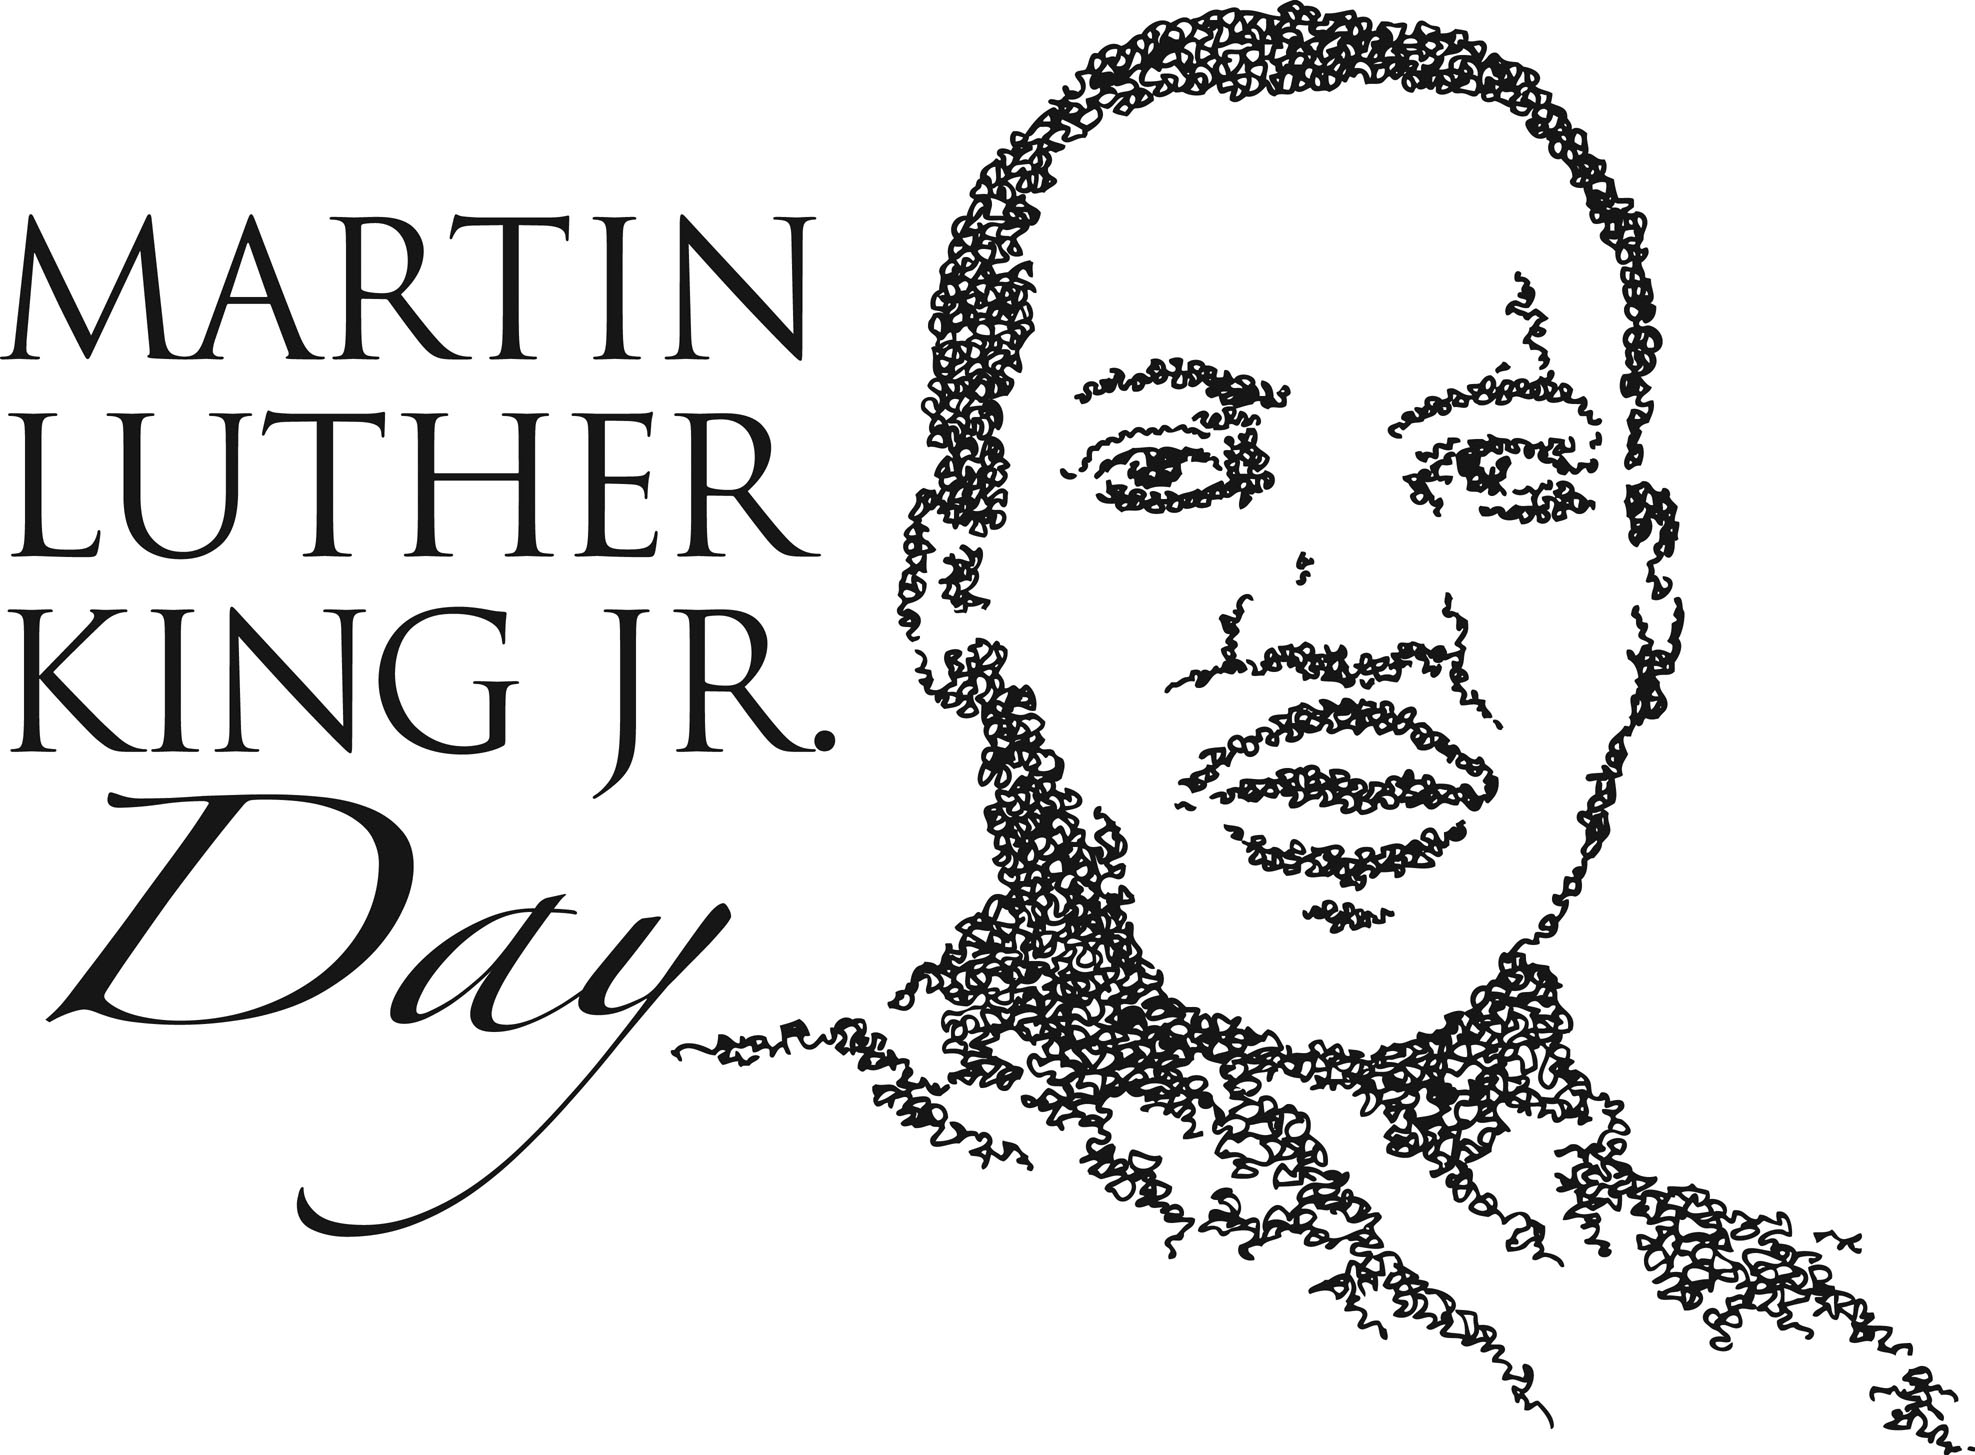 Martin luther king day clipart images - -Martin luther king day clipart images - ClipartFest-6